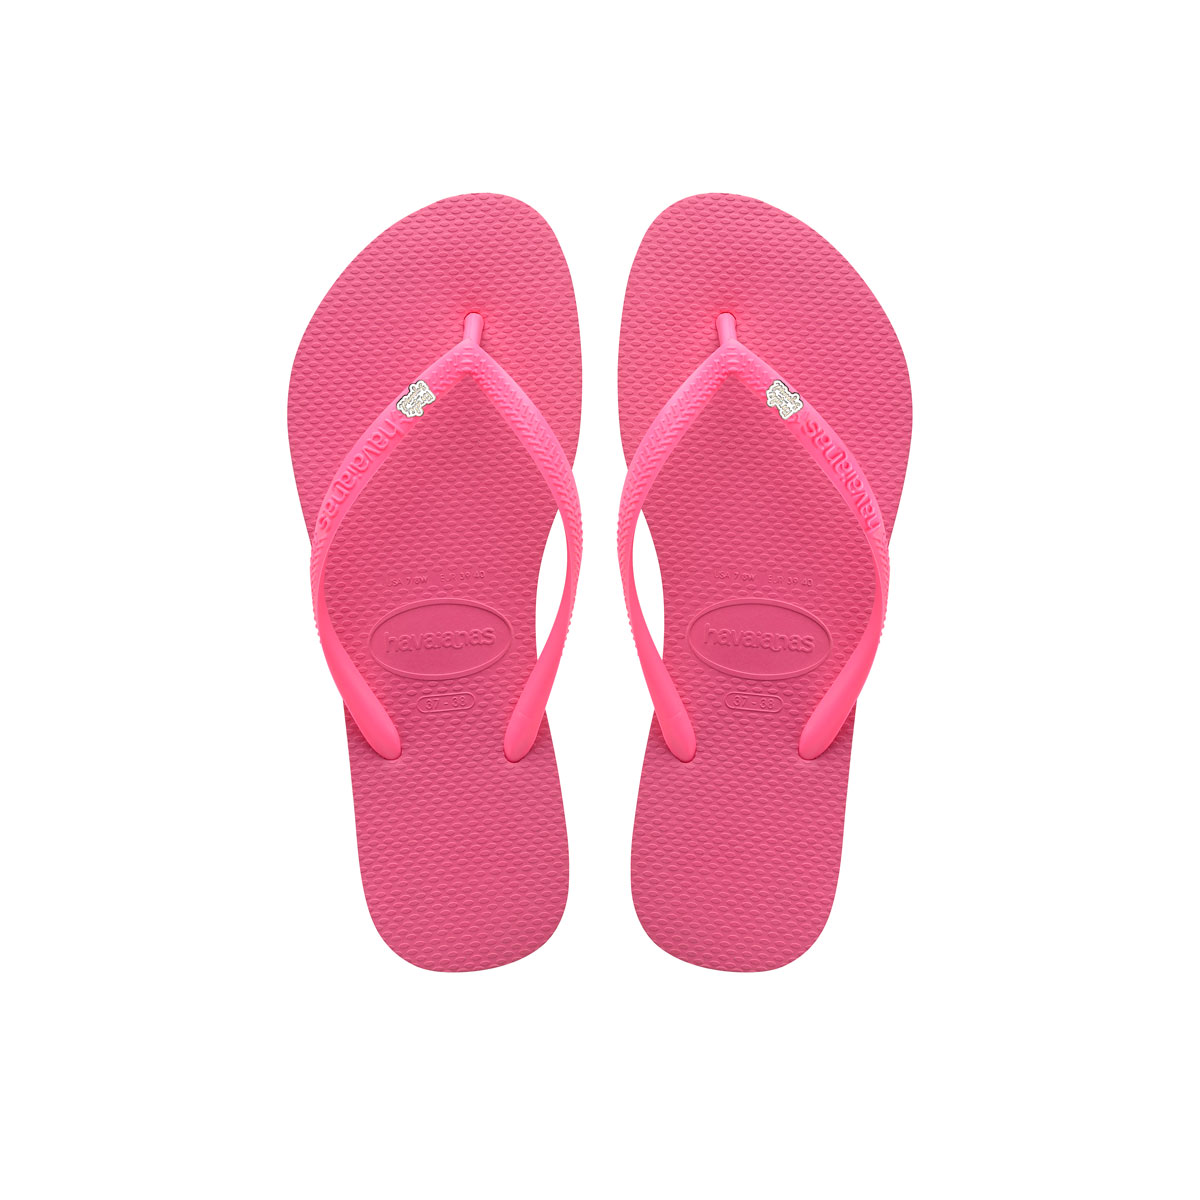 Havaianas Shocking Pink Flip Flops with Silver & White Bride Squad Pin